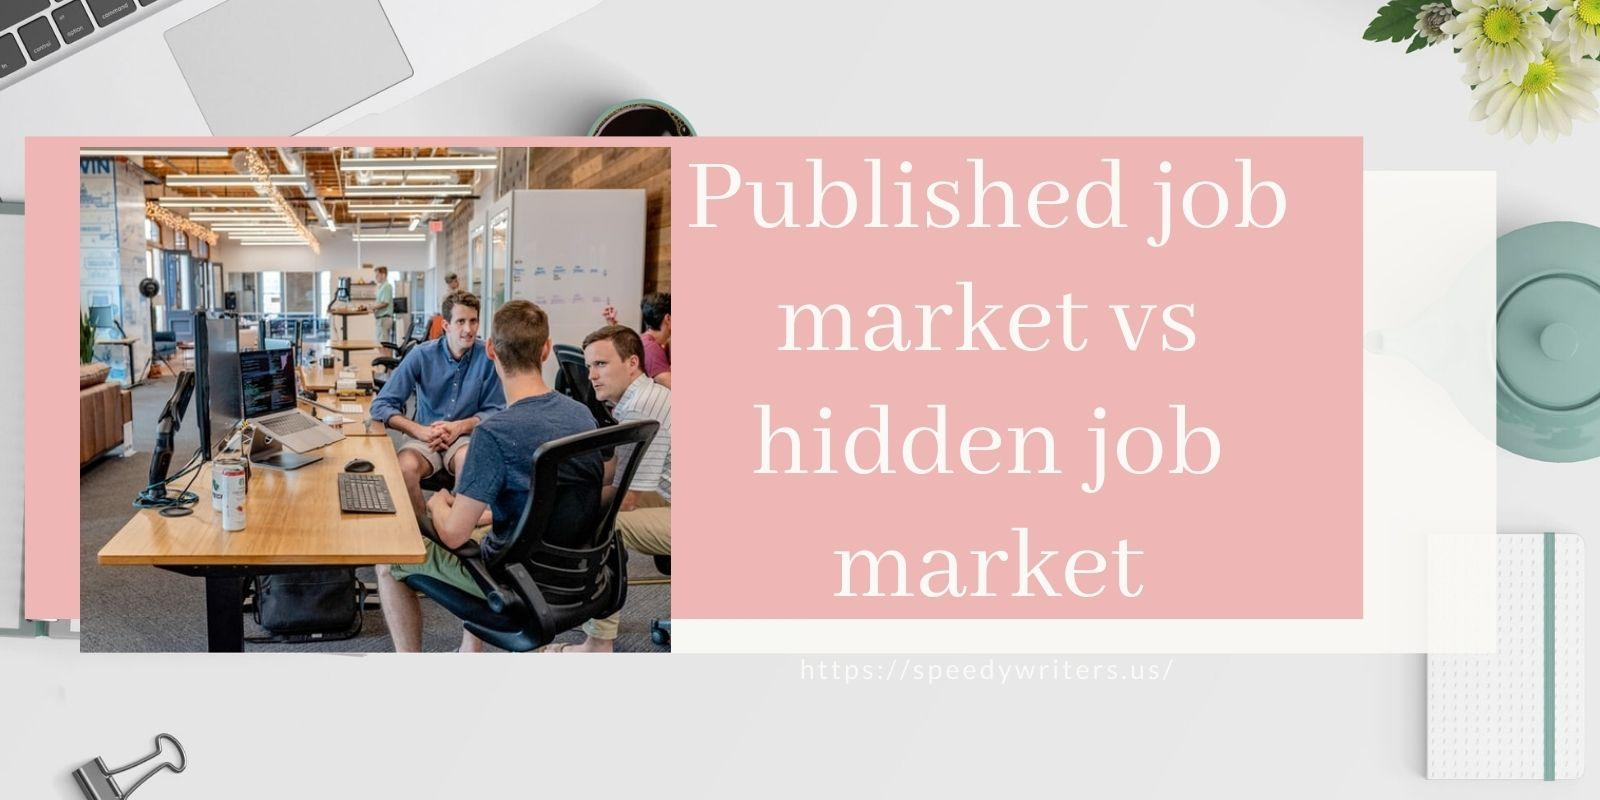 difference between the published job market and the hidden job market